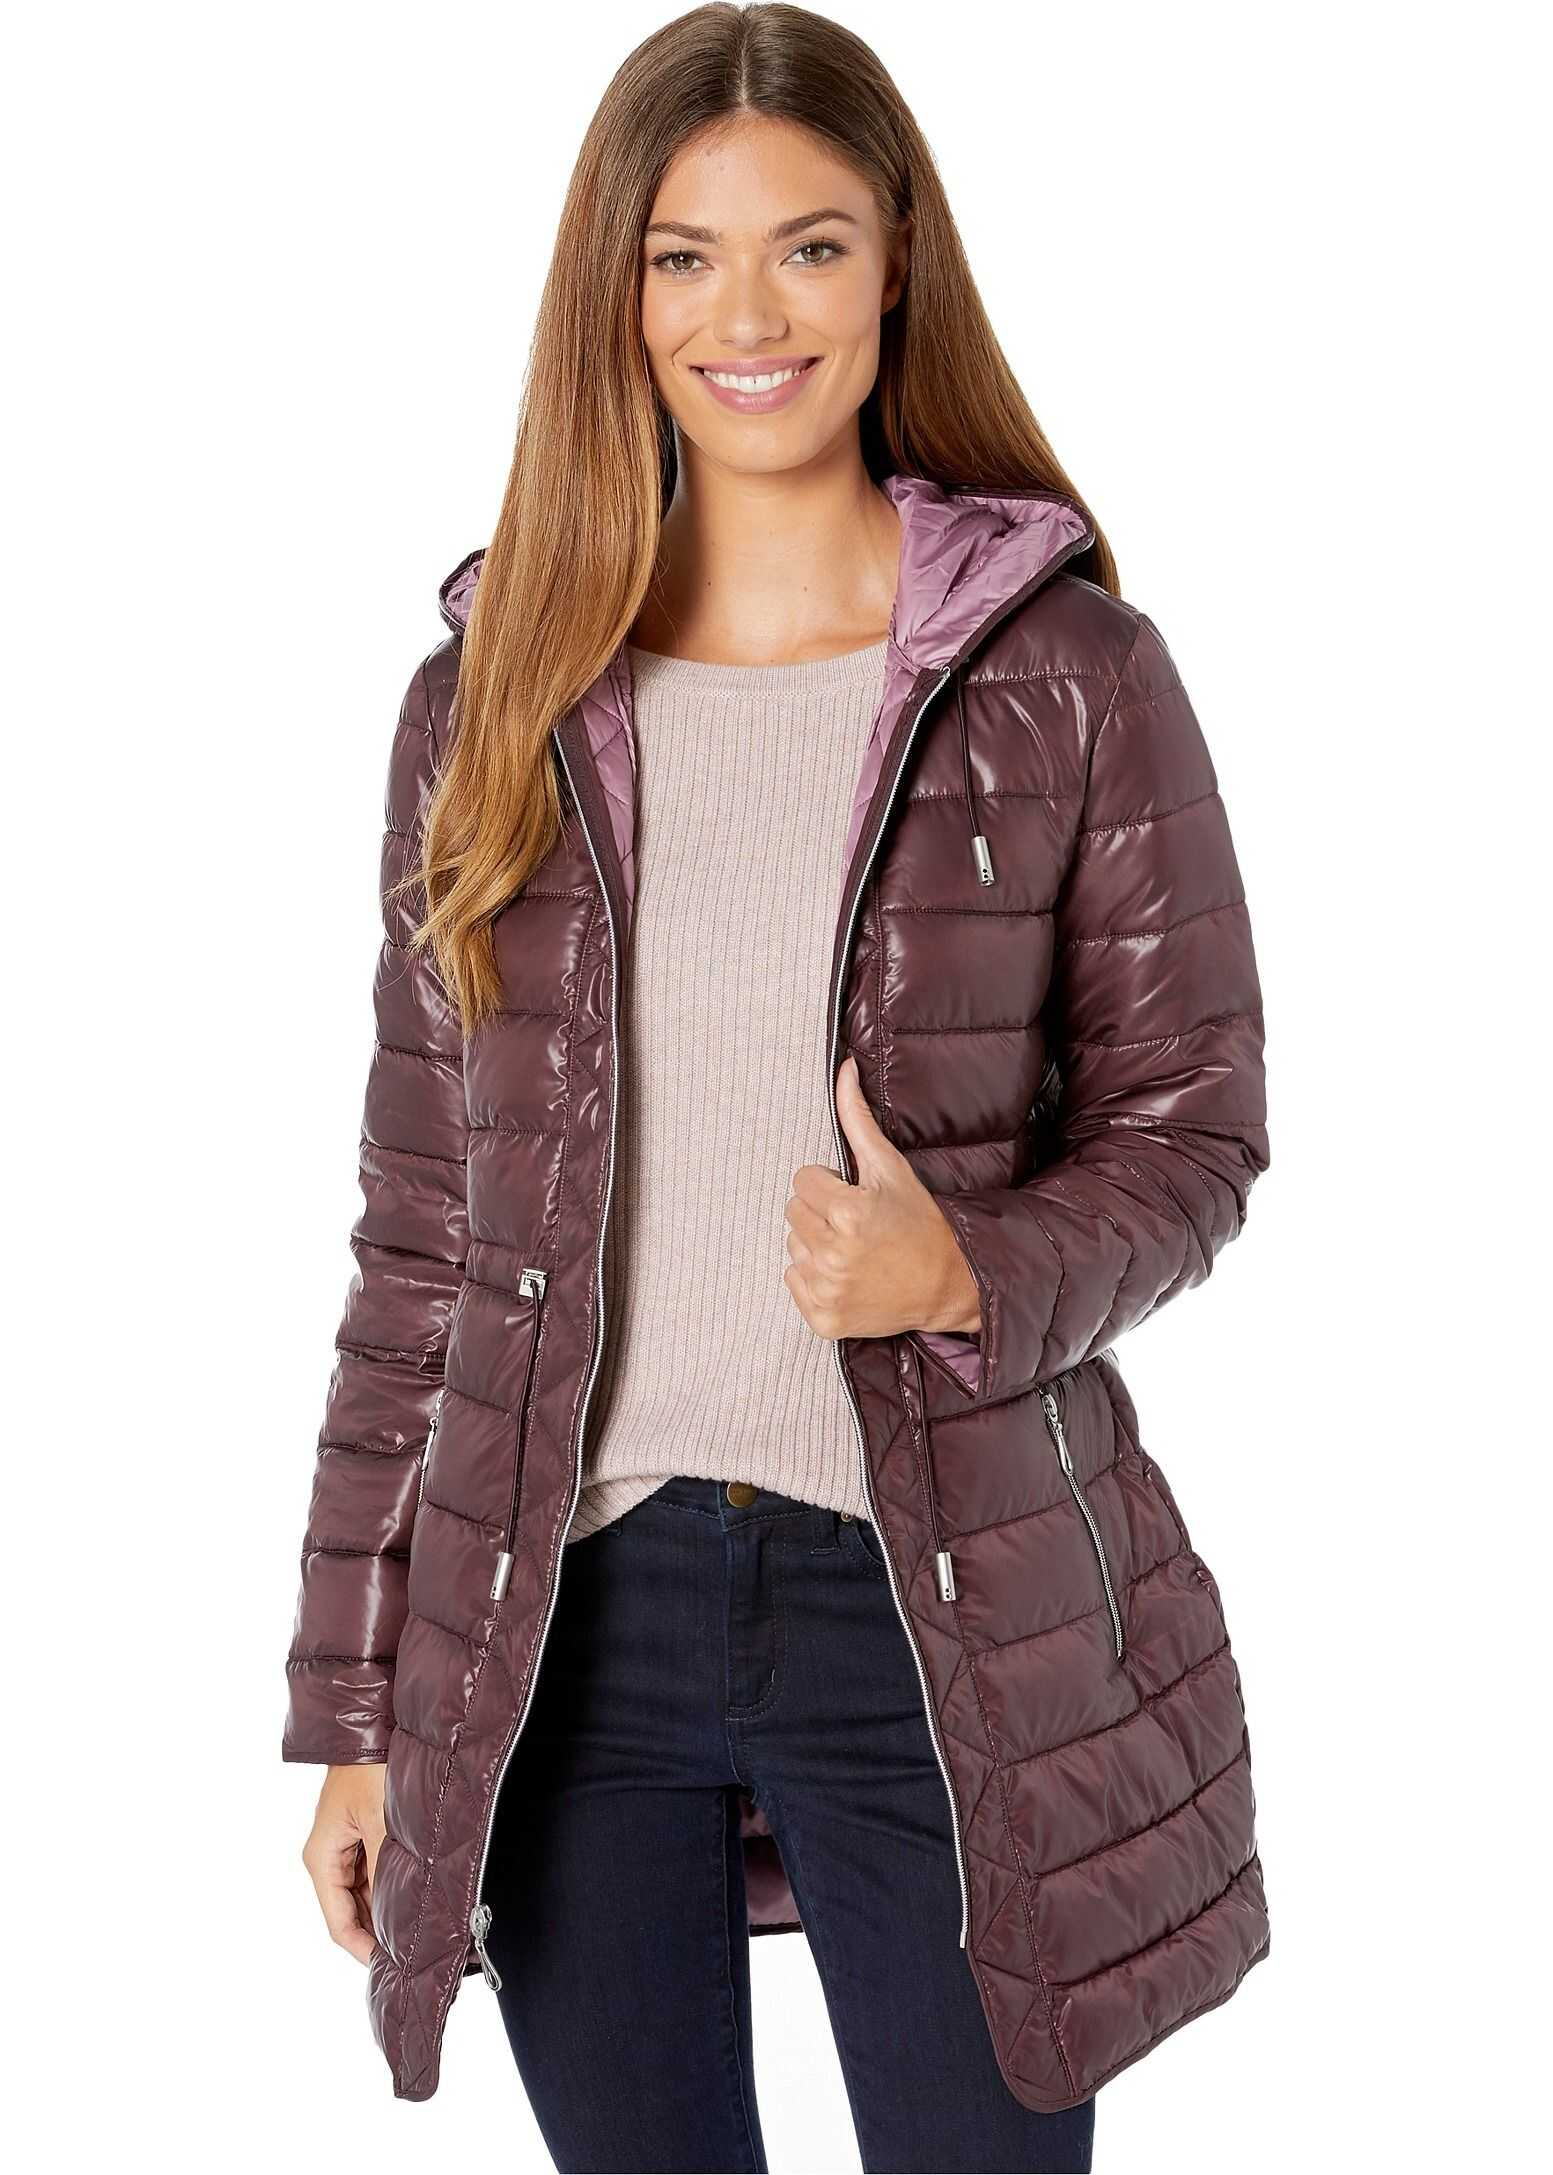 Kenneth Cole New York Hooded Packable Anorak Rum Raisin/Mauve